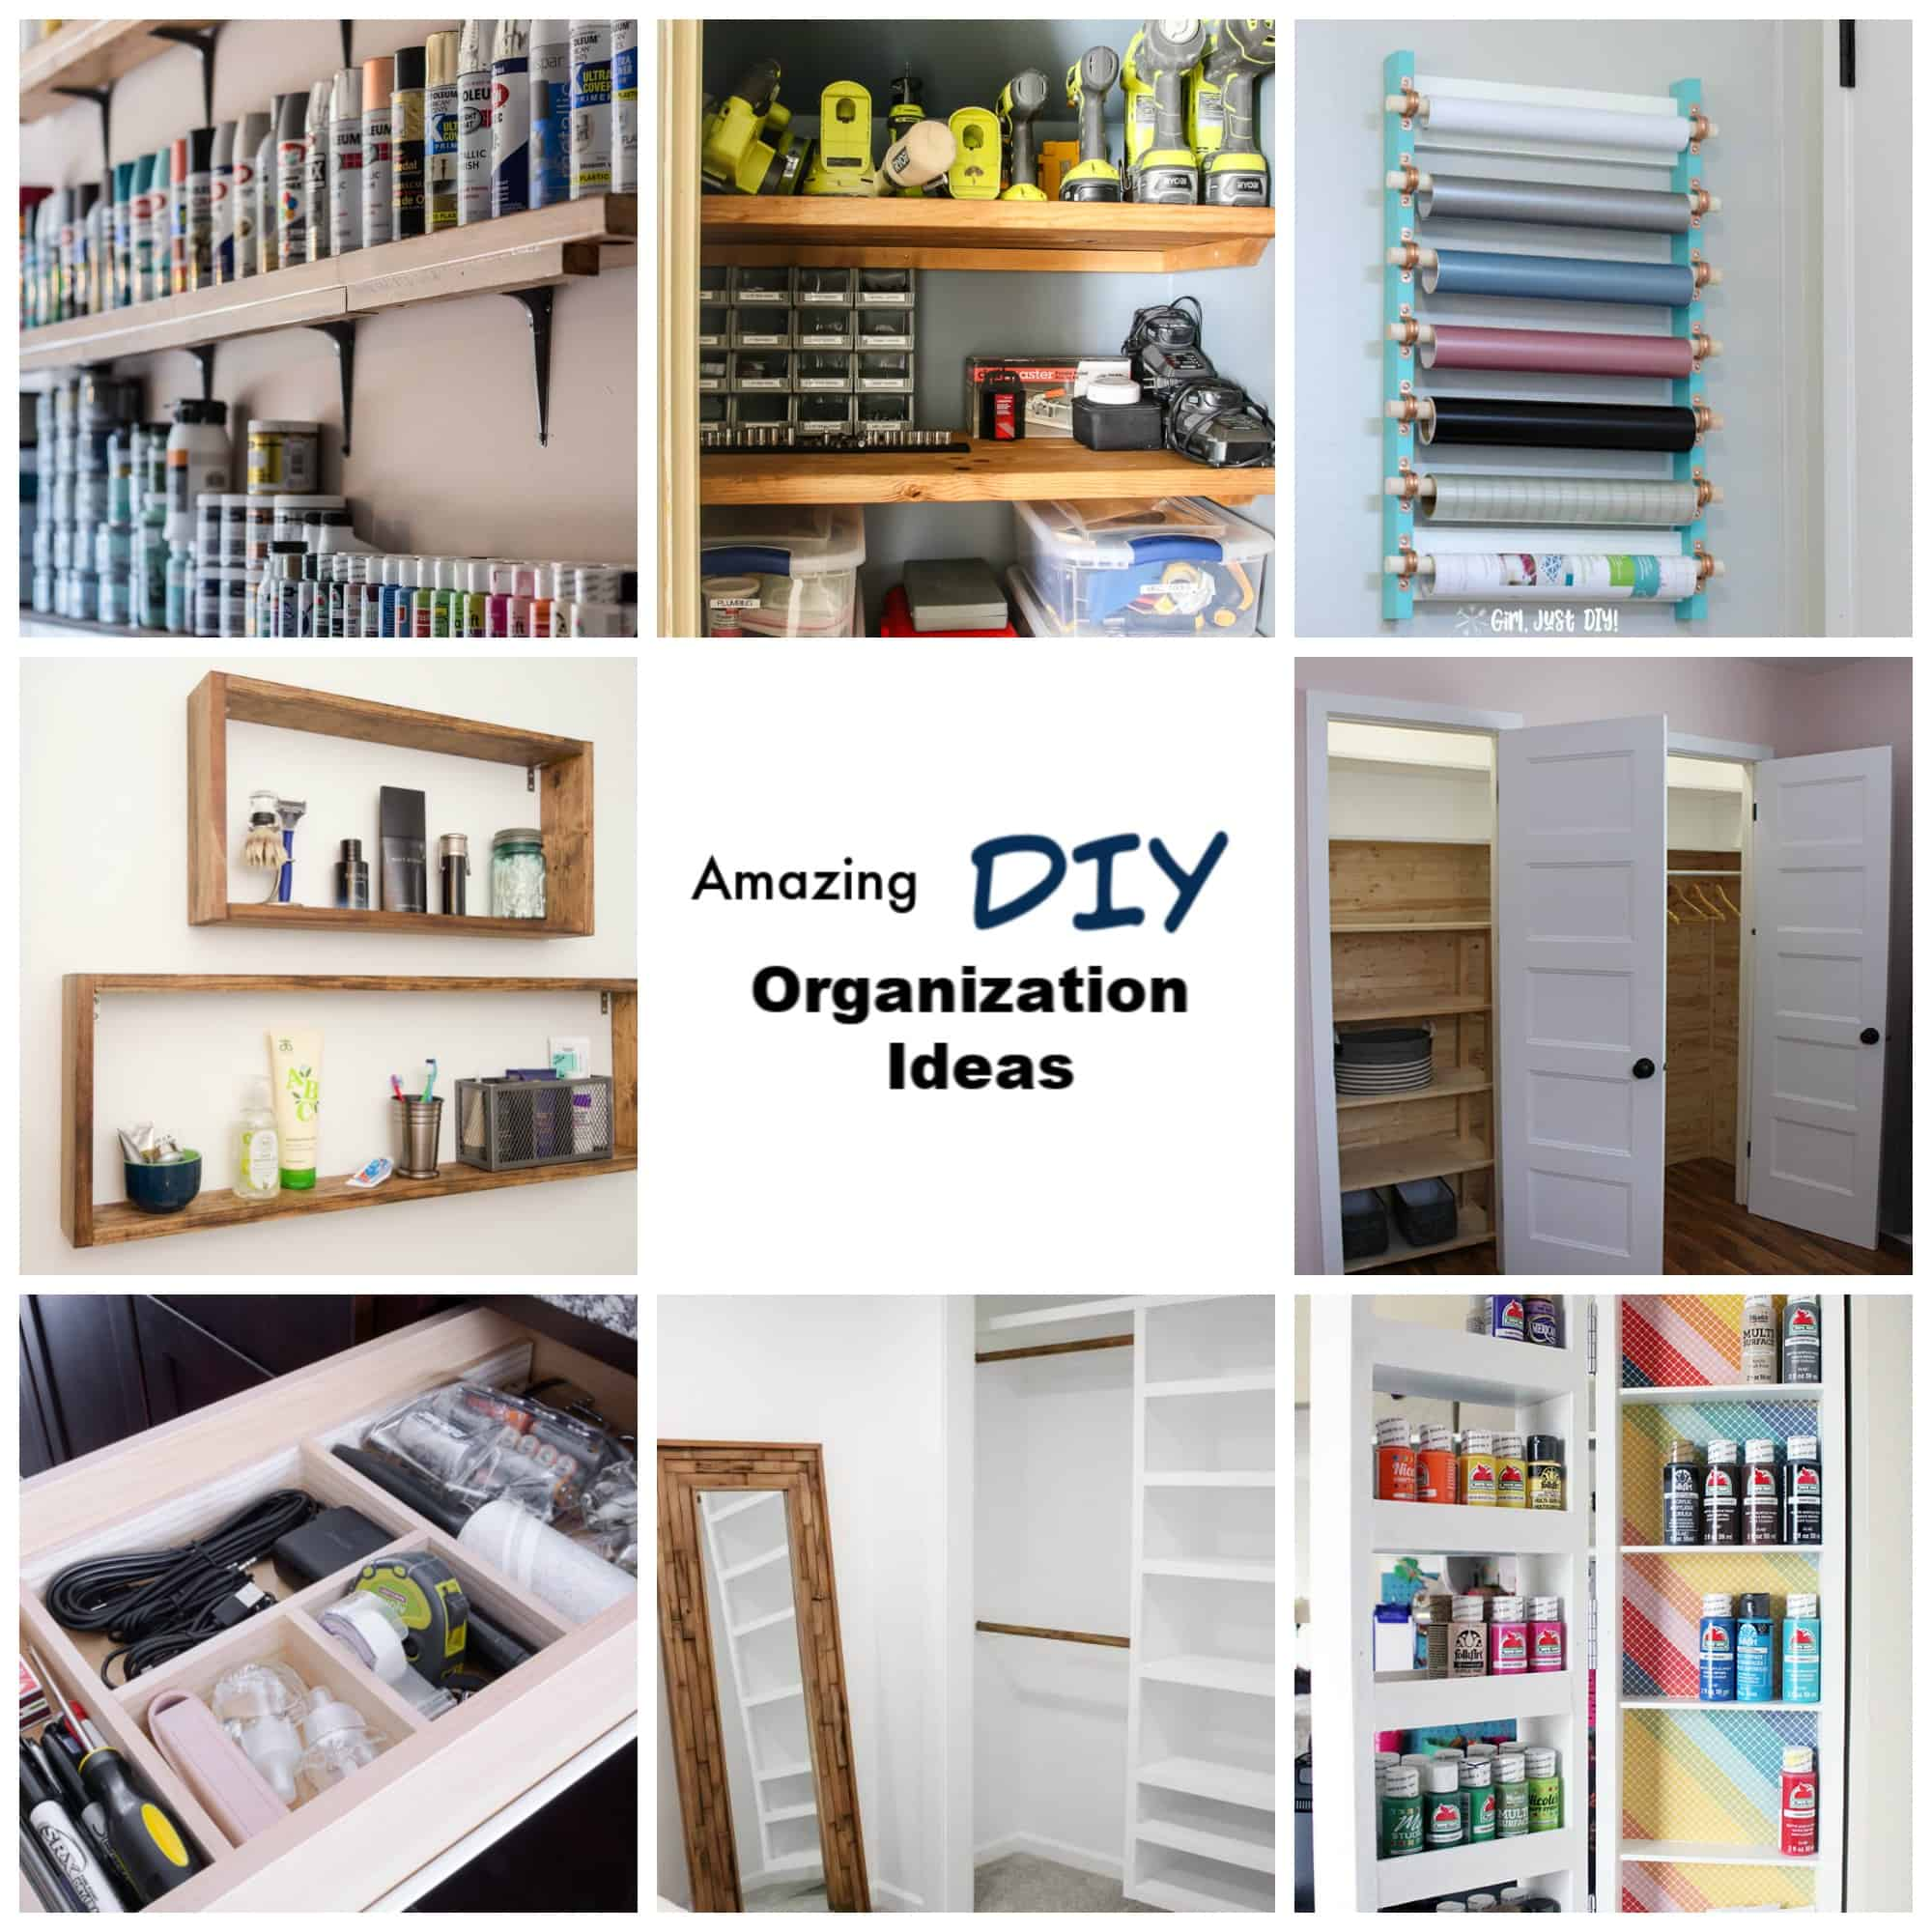 Amazing DIY Organization Ideas that work.